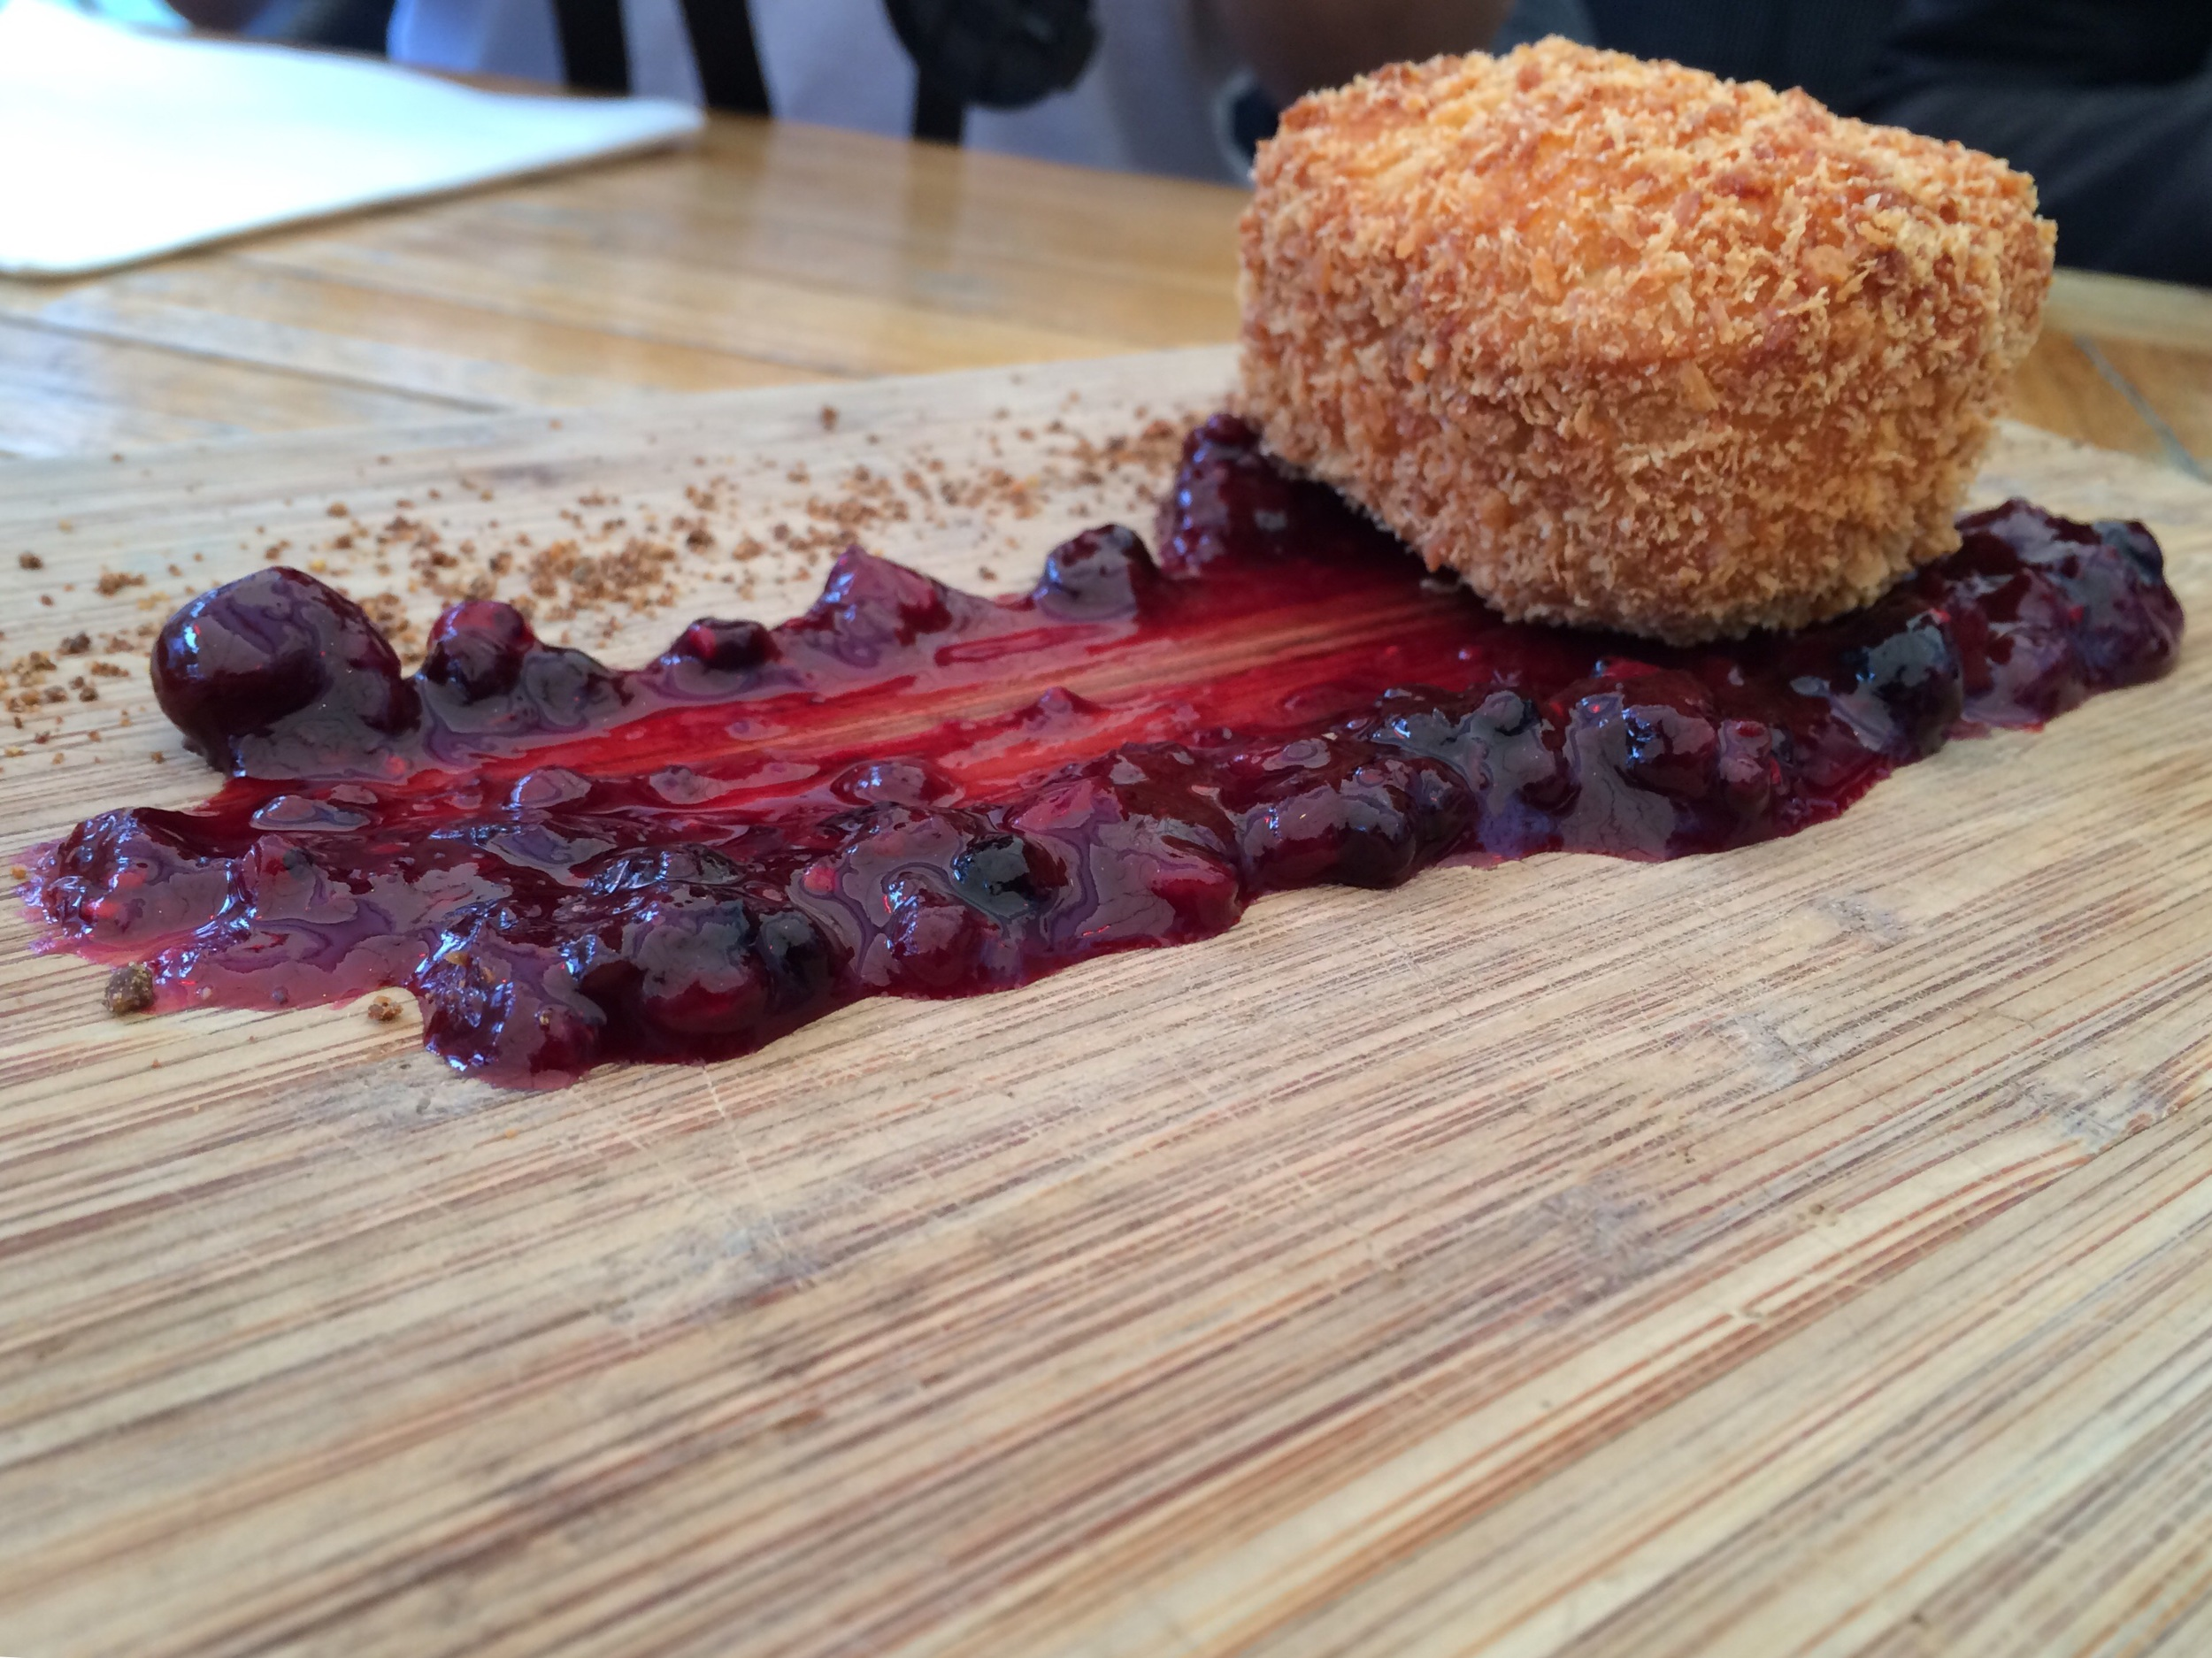 Artful board of fried cheese and cherry compote